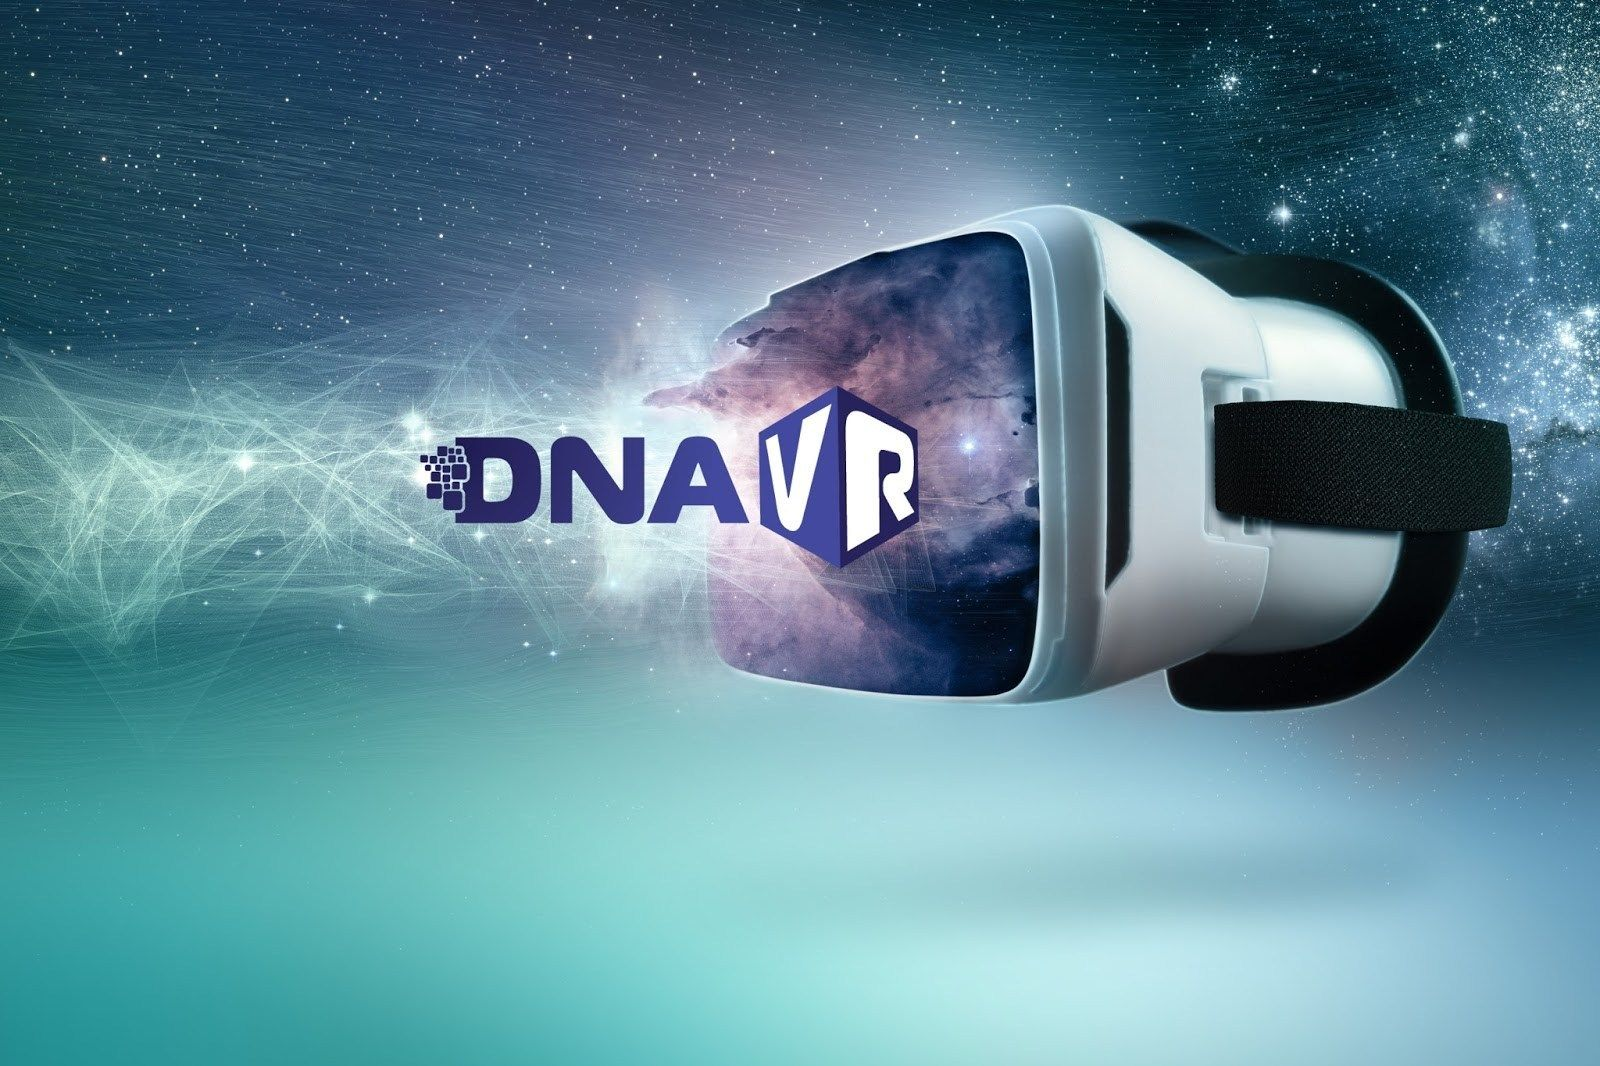 For lovers of Virtual Reality DNA VR allows you to play